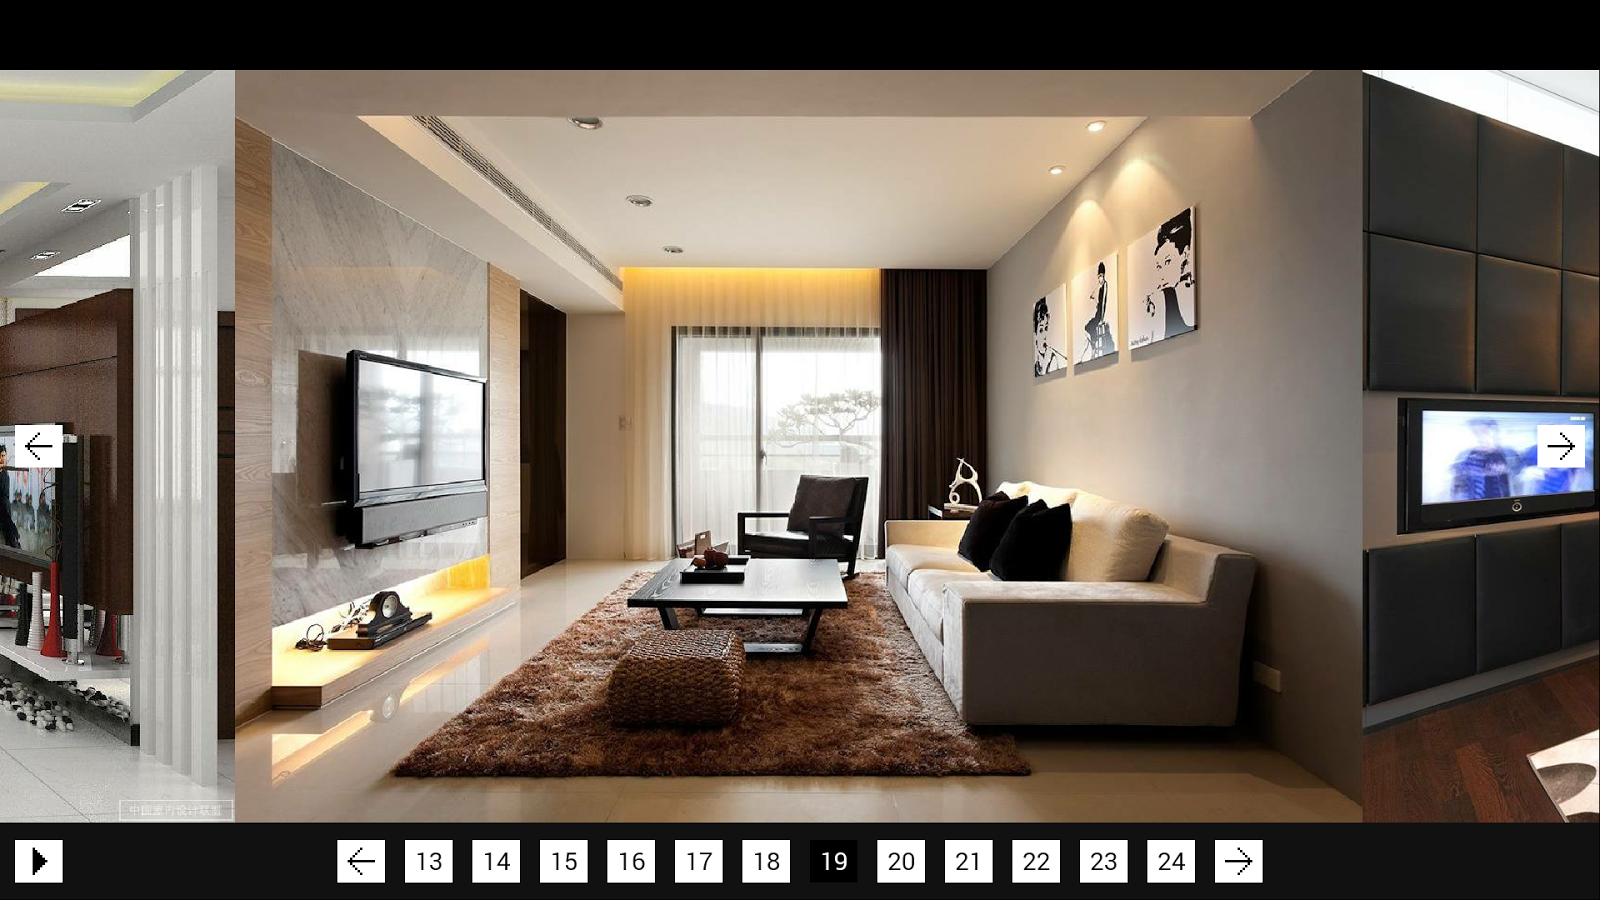 Home interior design android apps on google play for Design a space online